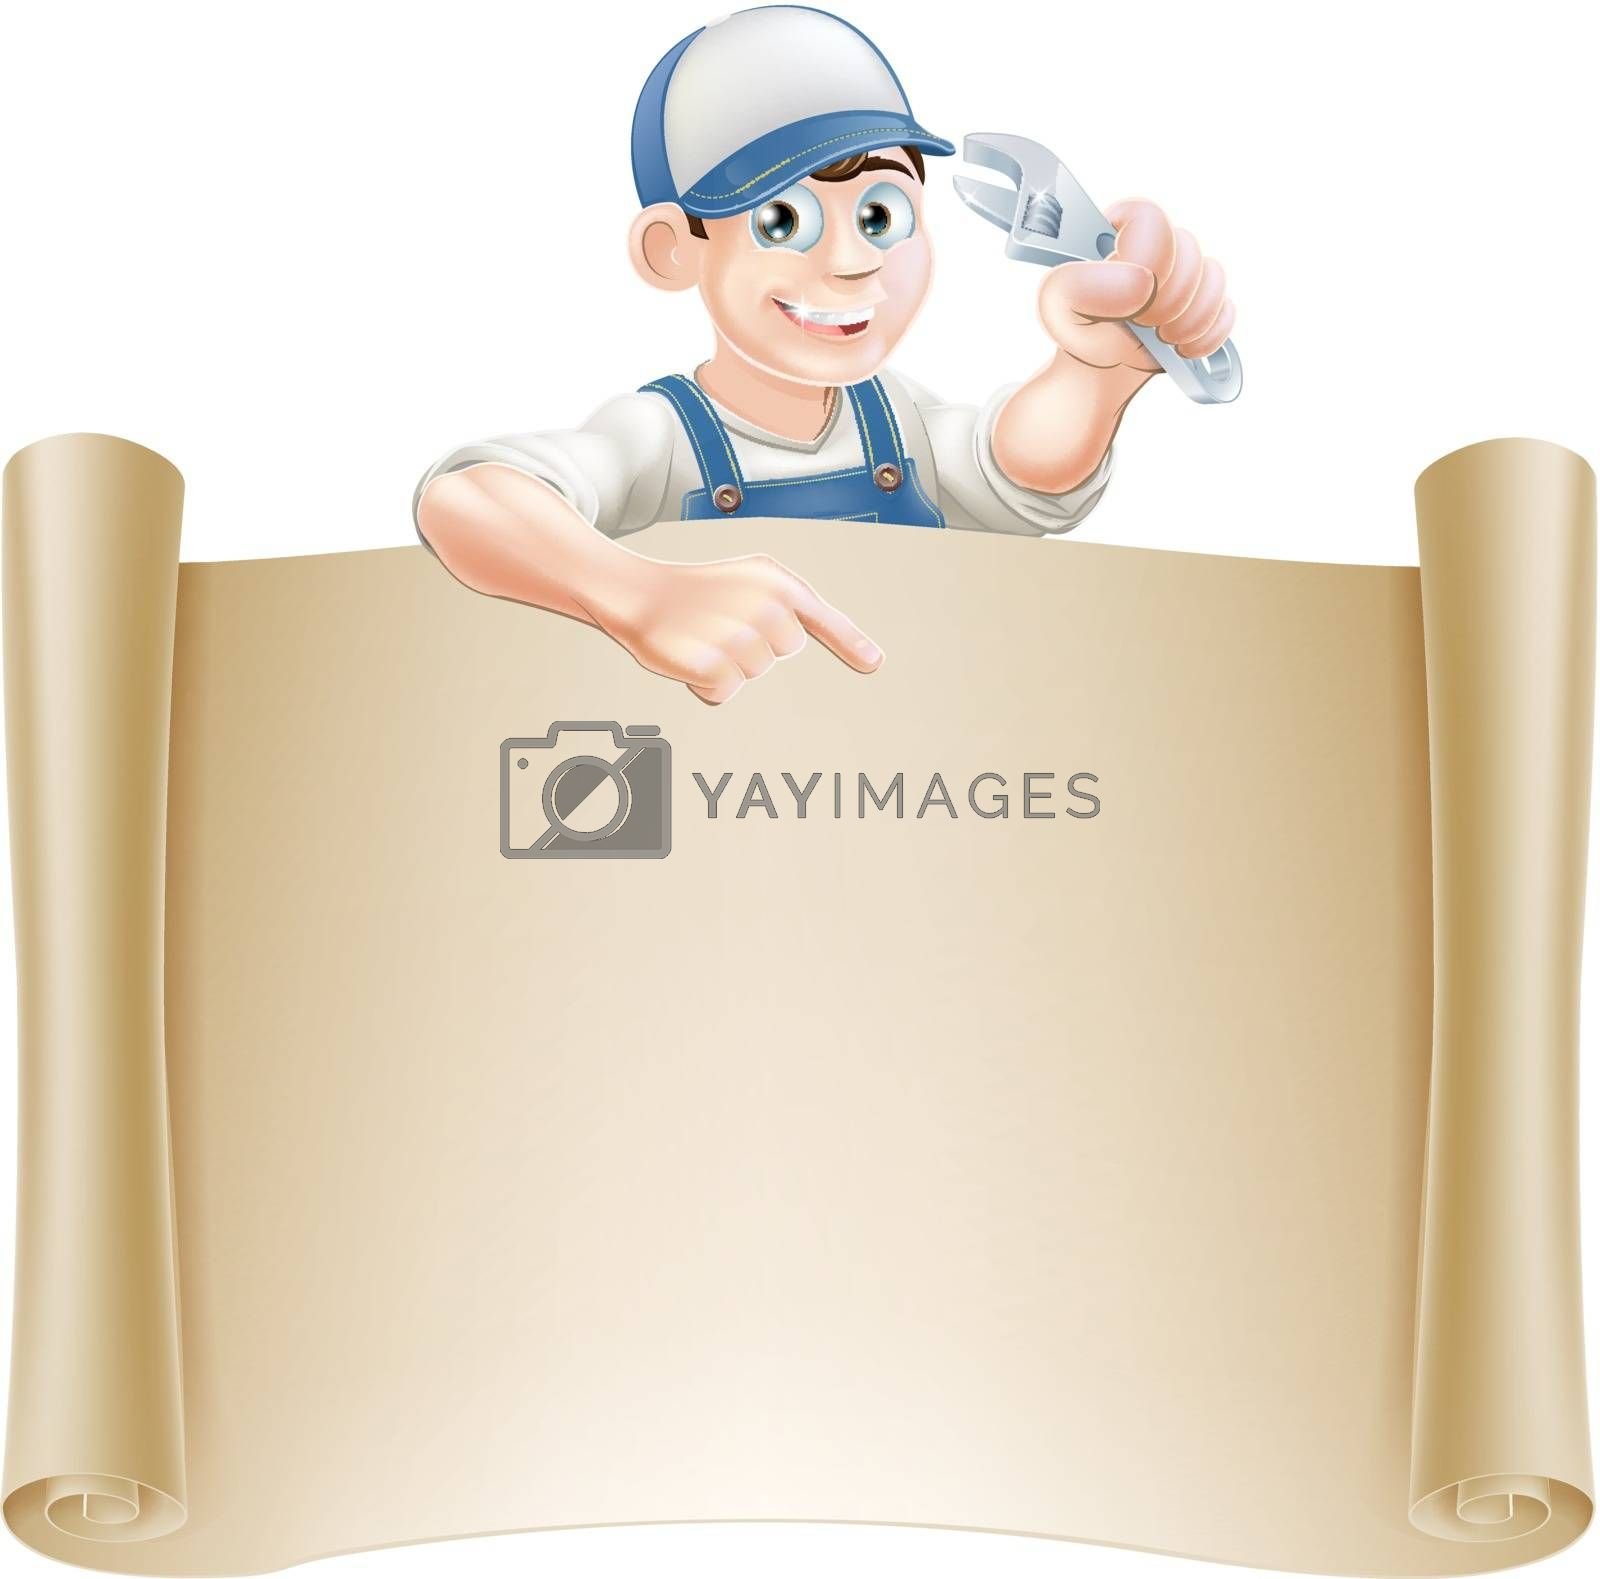 A plumber or mechanic holding an adjustable spanner or wrench and peeking over a scroll banner and pointing